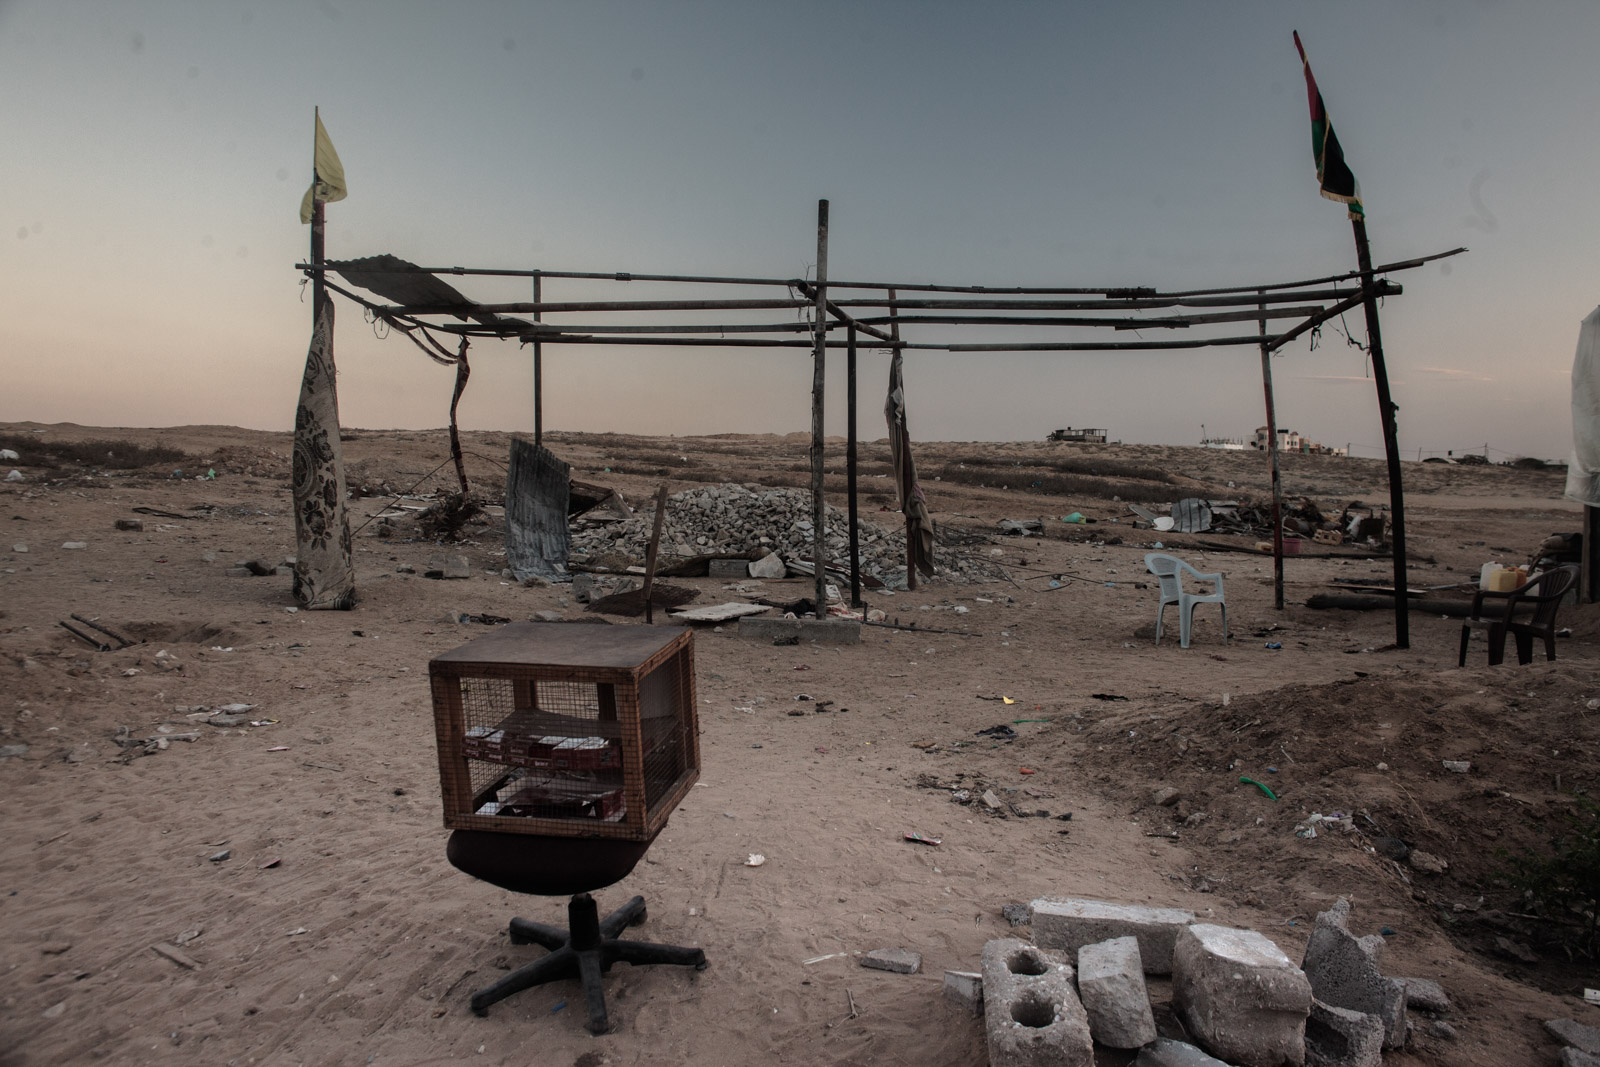 Beit Hanoun, Gaza - September 30, 2014: Metal poles remain where a makeshift tent was left abandoned by a family residing there.